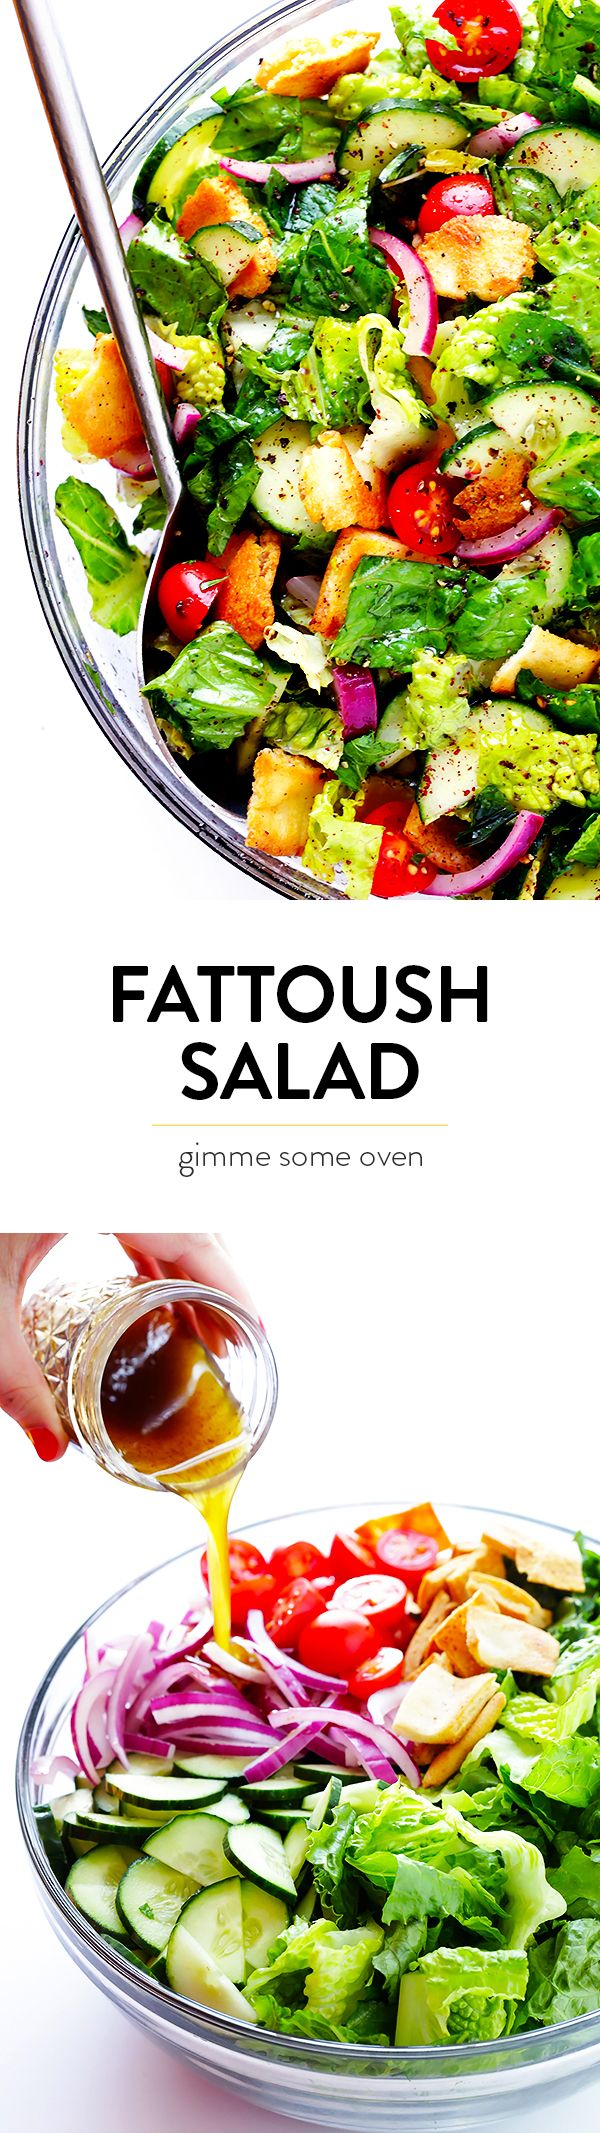 This classic Fattoush Salad recipe is quick and easy to make, and made with a zesty lemon dressing.   gimmesomeoven.com